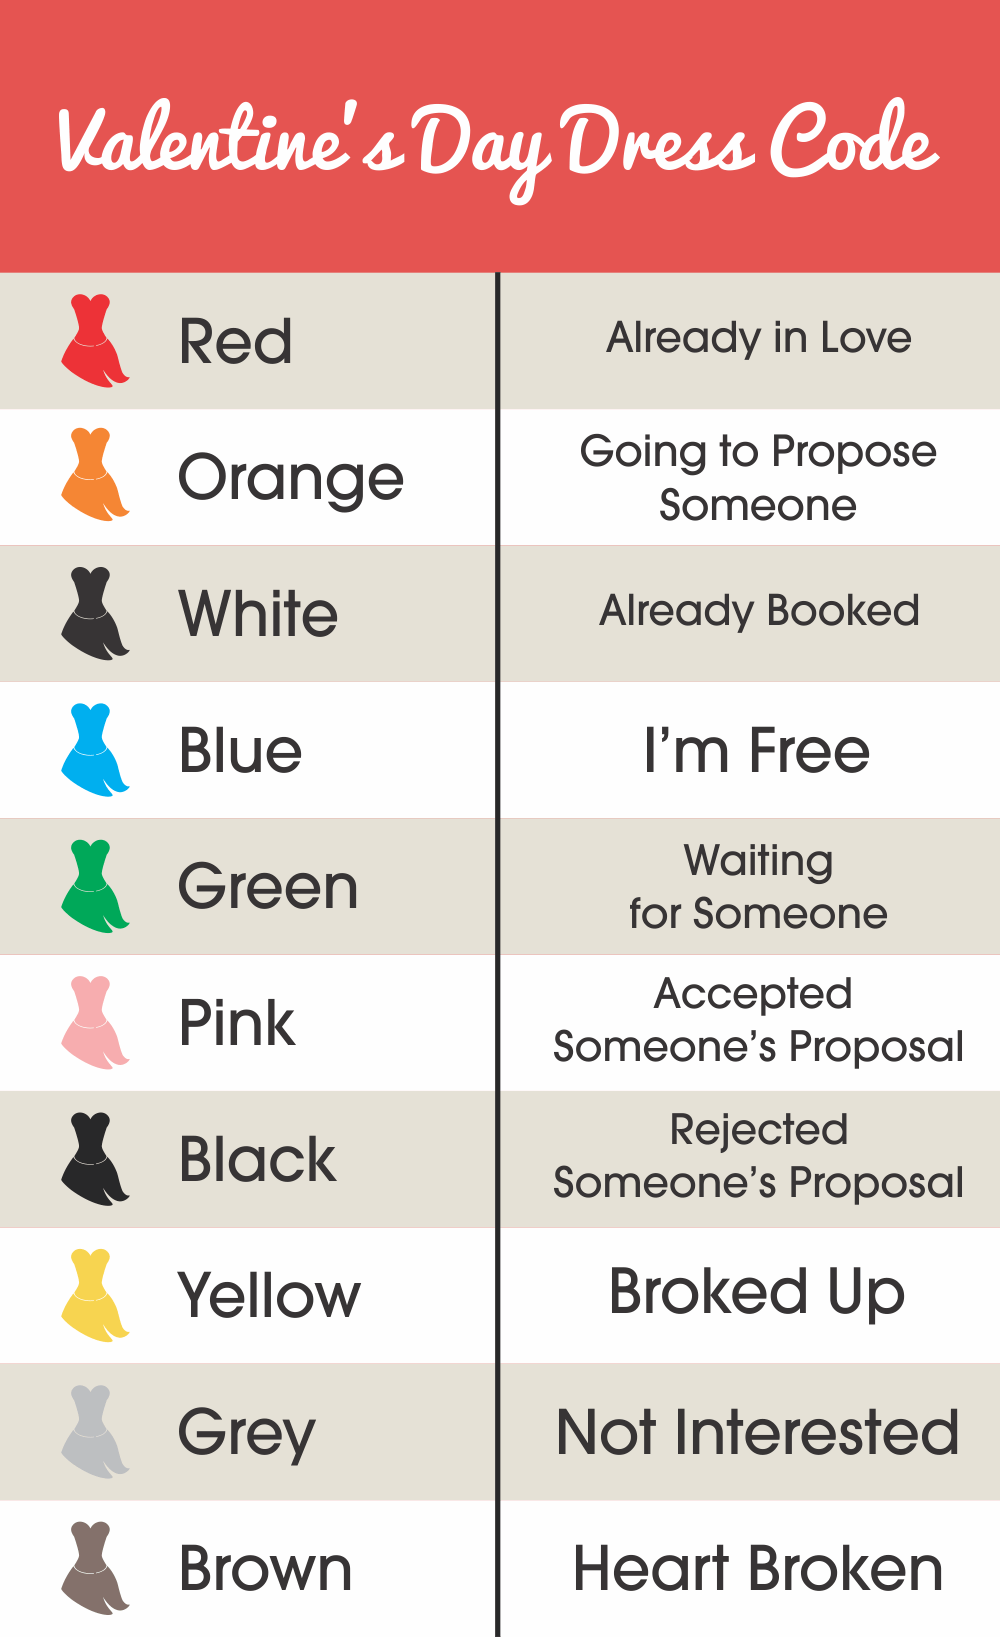 a key that indicates which colors of clothing represent romantic feelings for Valentines Day